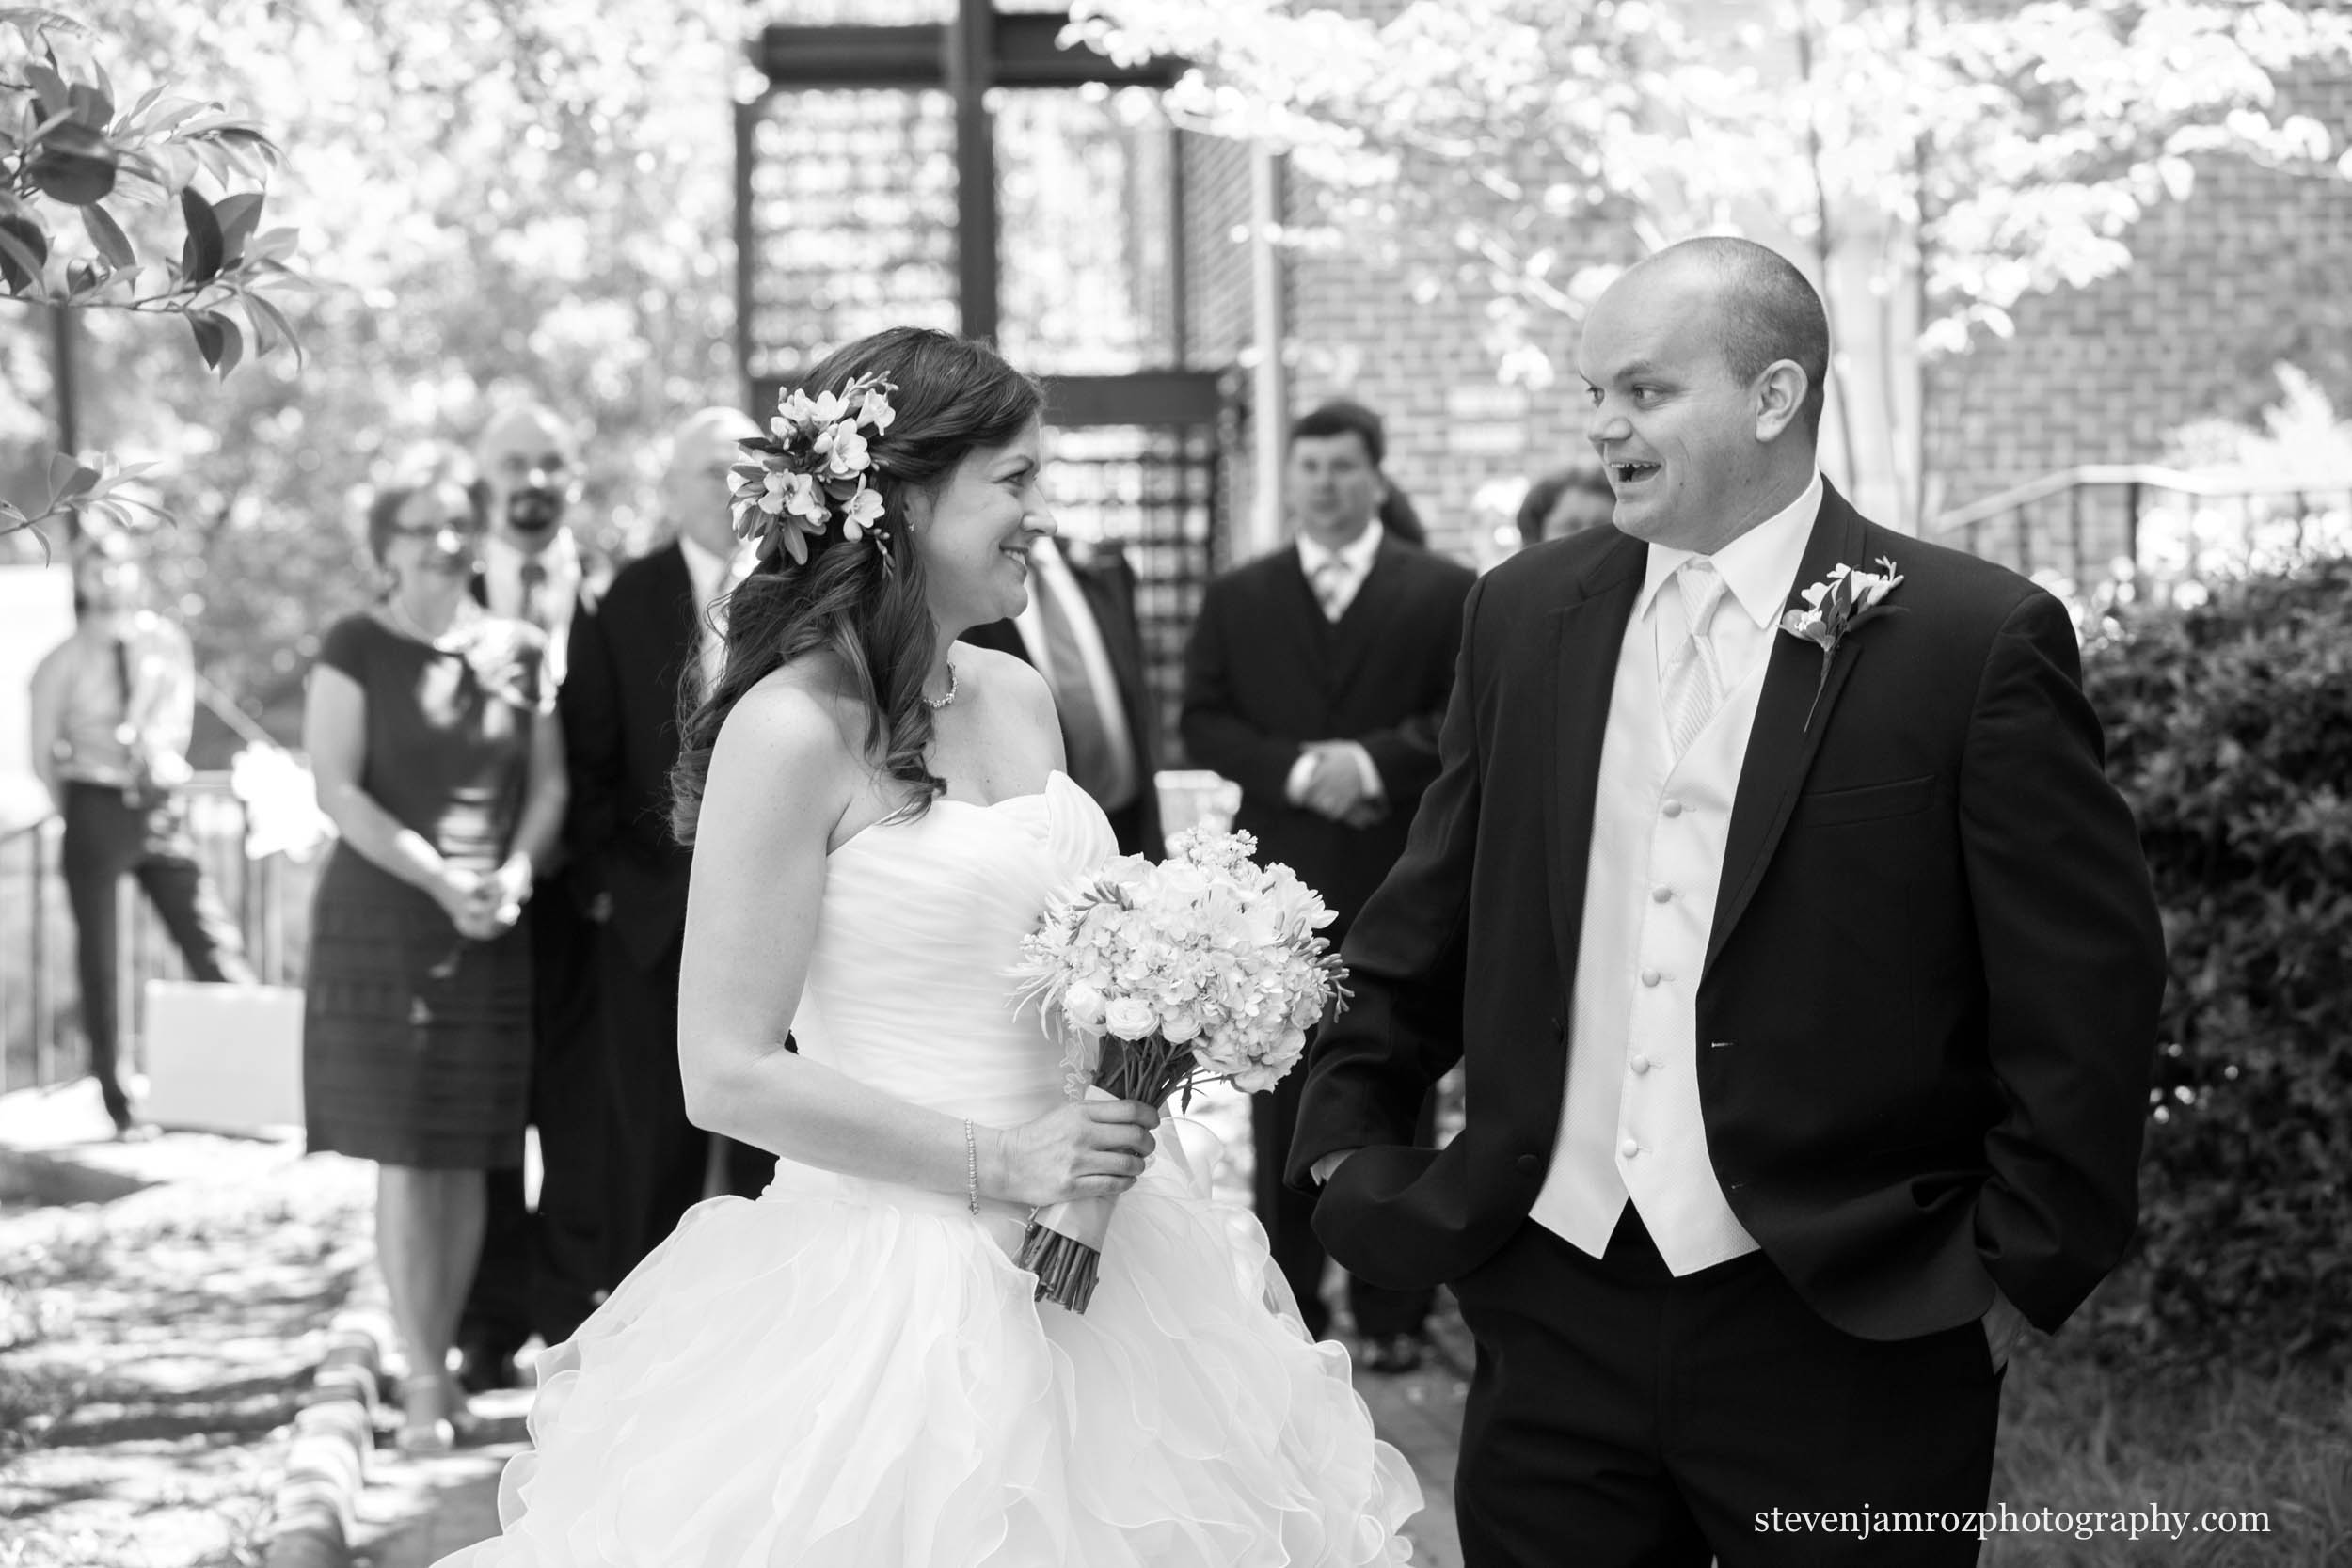 surprise-first-look-raleigh-wedding-steven-jamroz-photography-0196.jpg